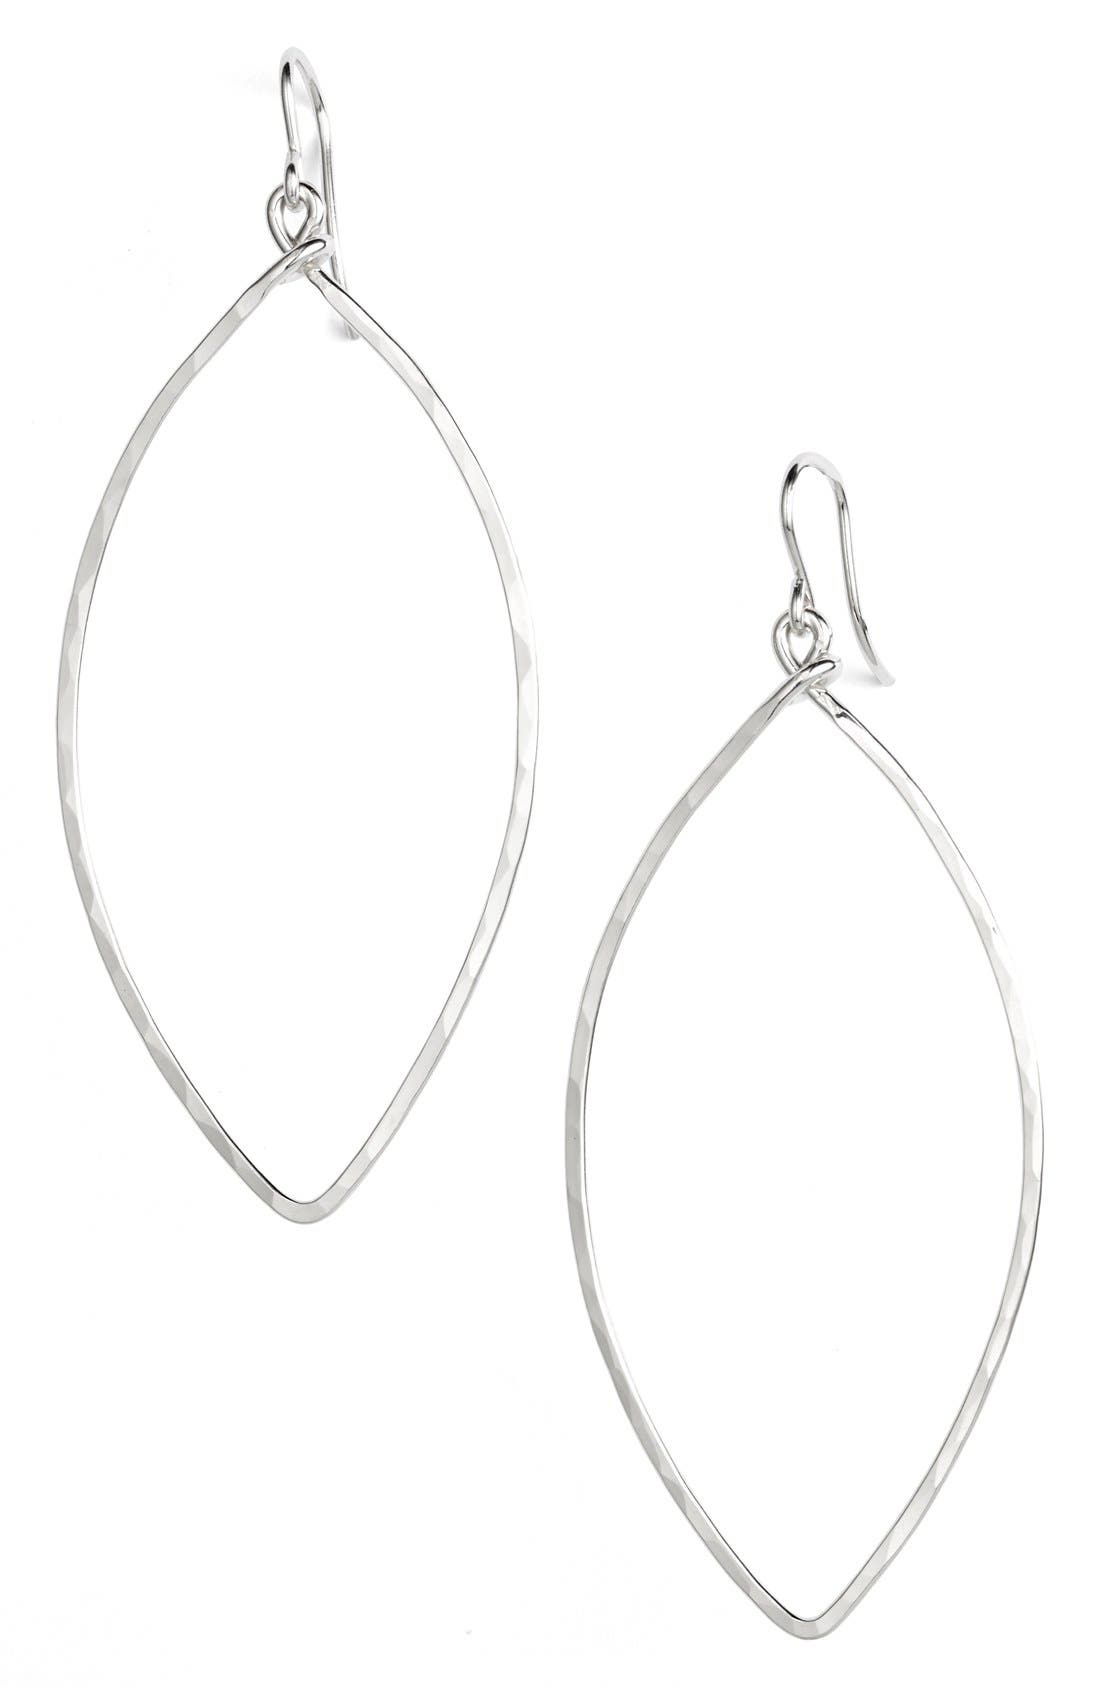 Ija Sterling Silver Oblong Hoop Earrings